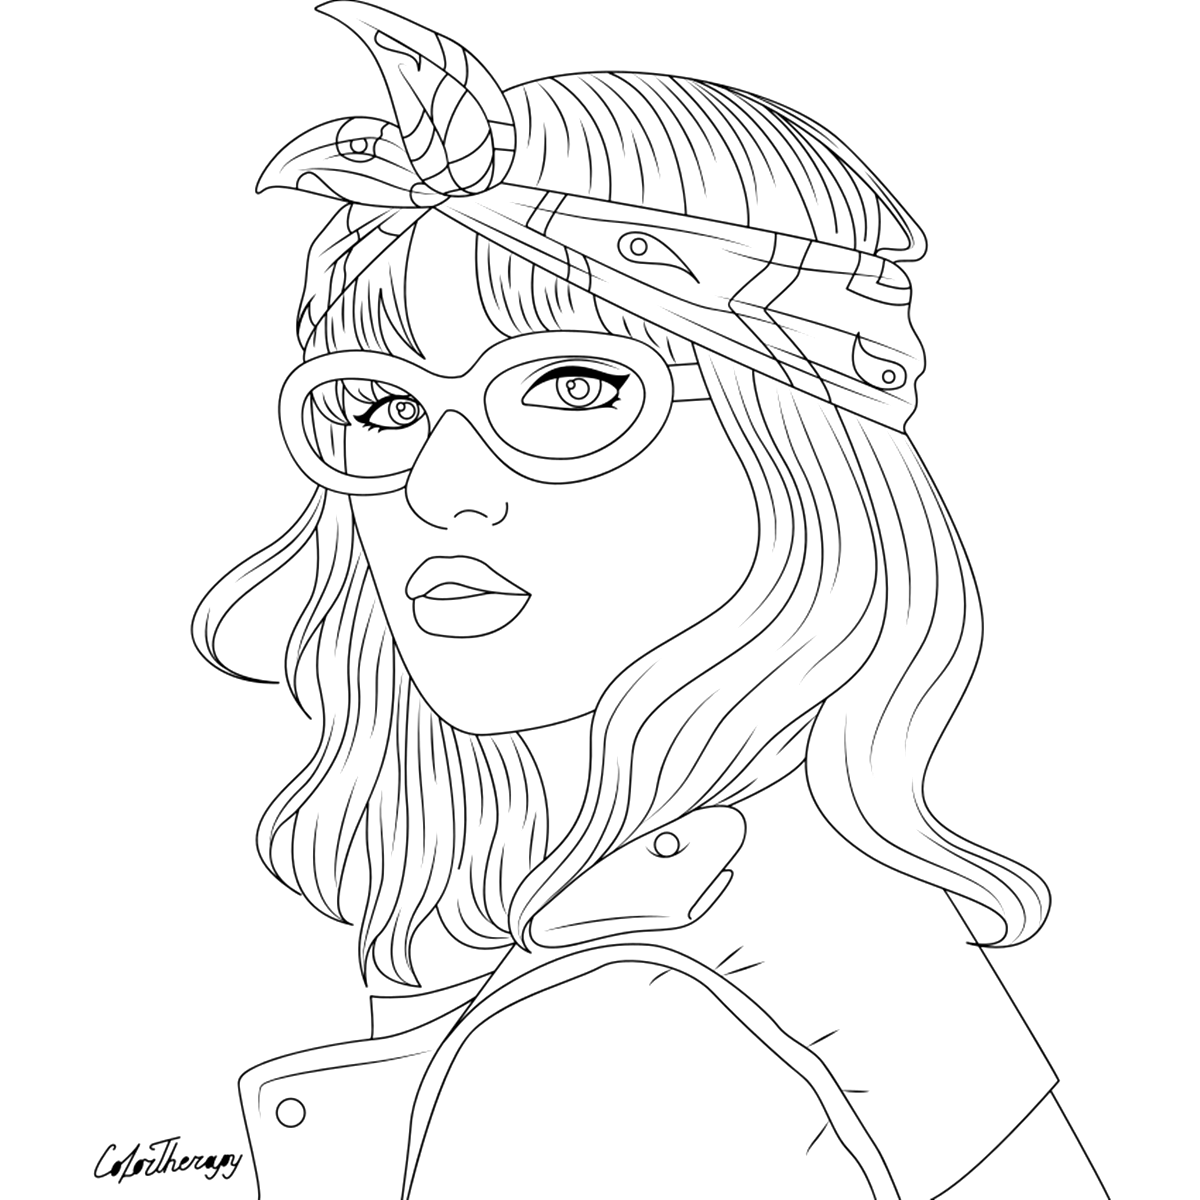 Pin By Marleni Morales L On Risco Menina Menino Cute Coloring Pages Color Therapy App Coloring Books